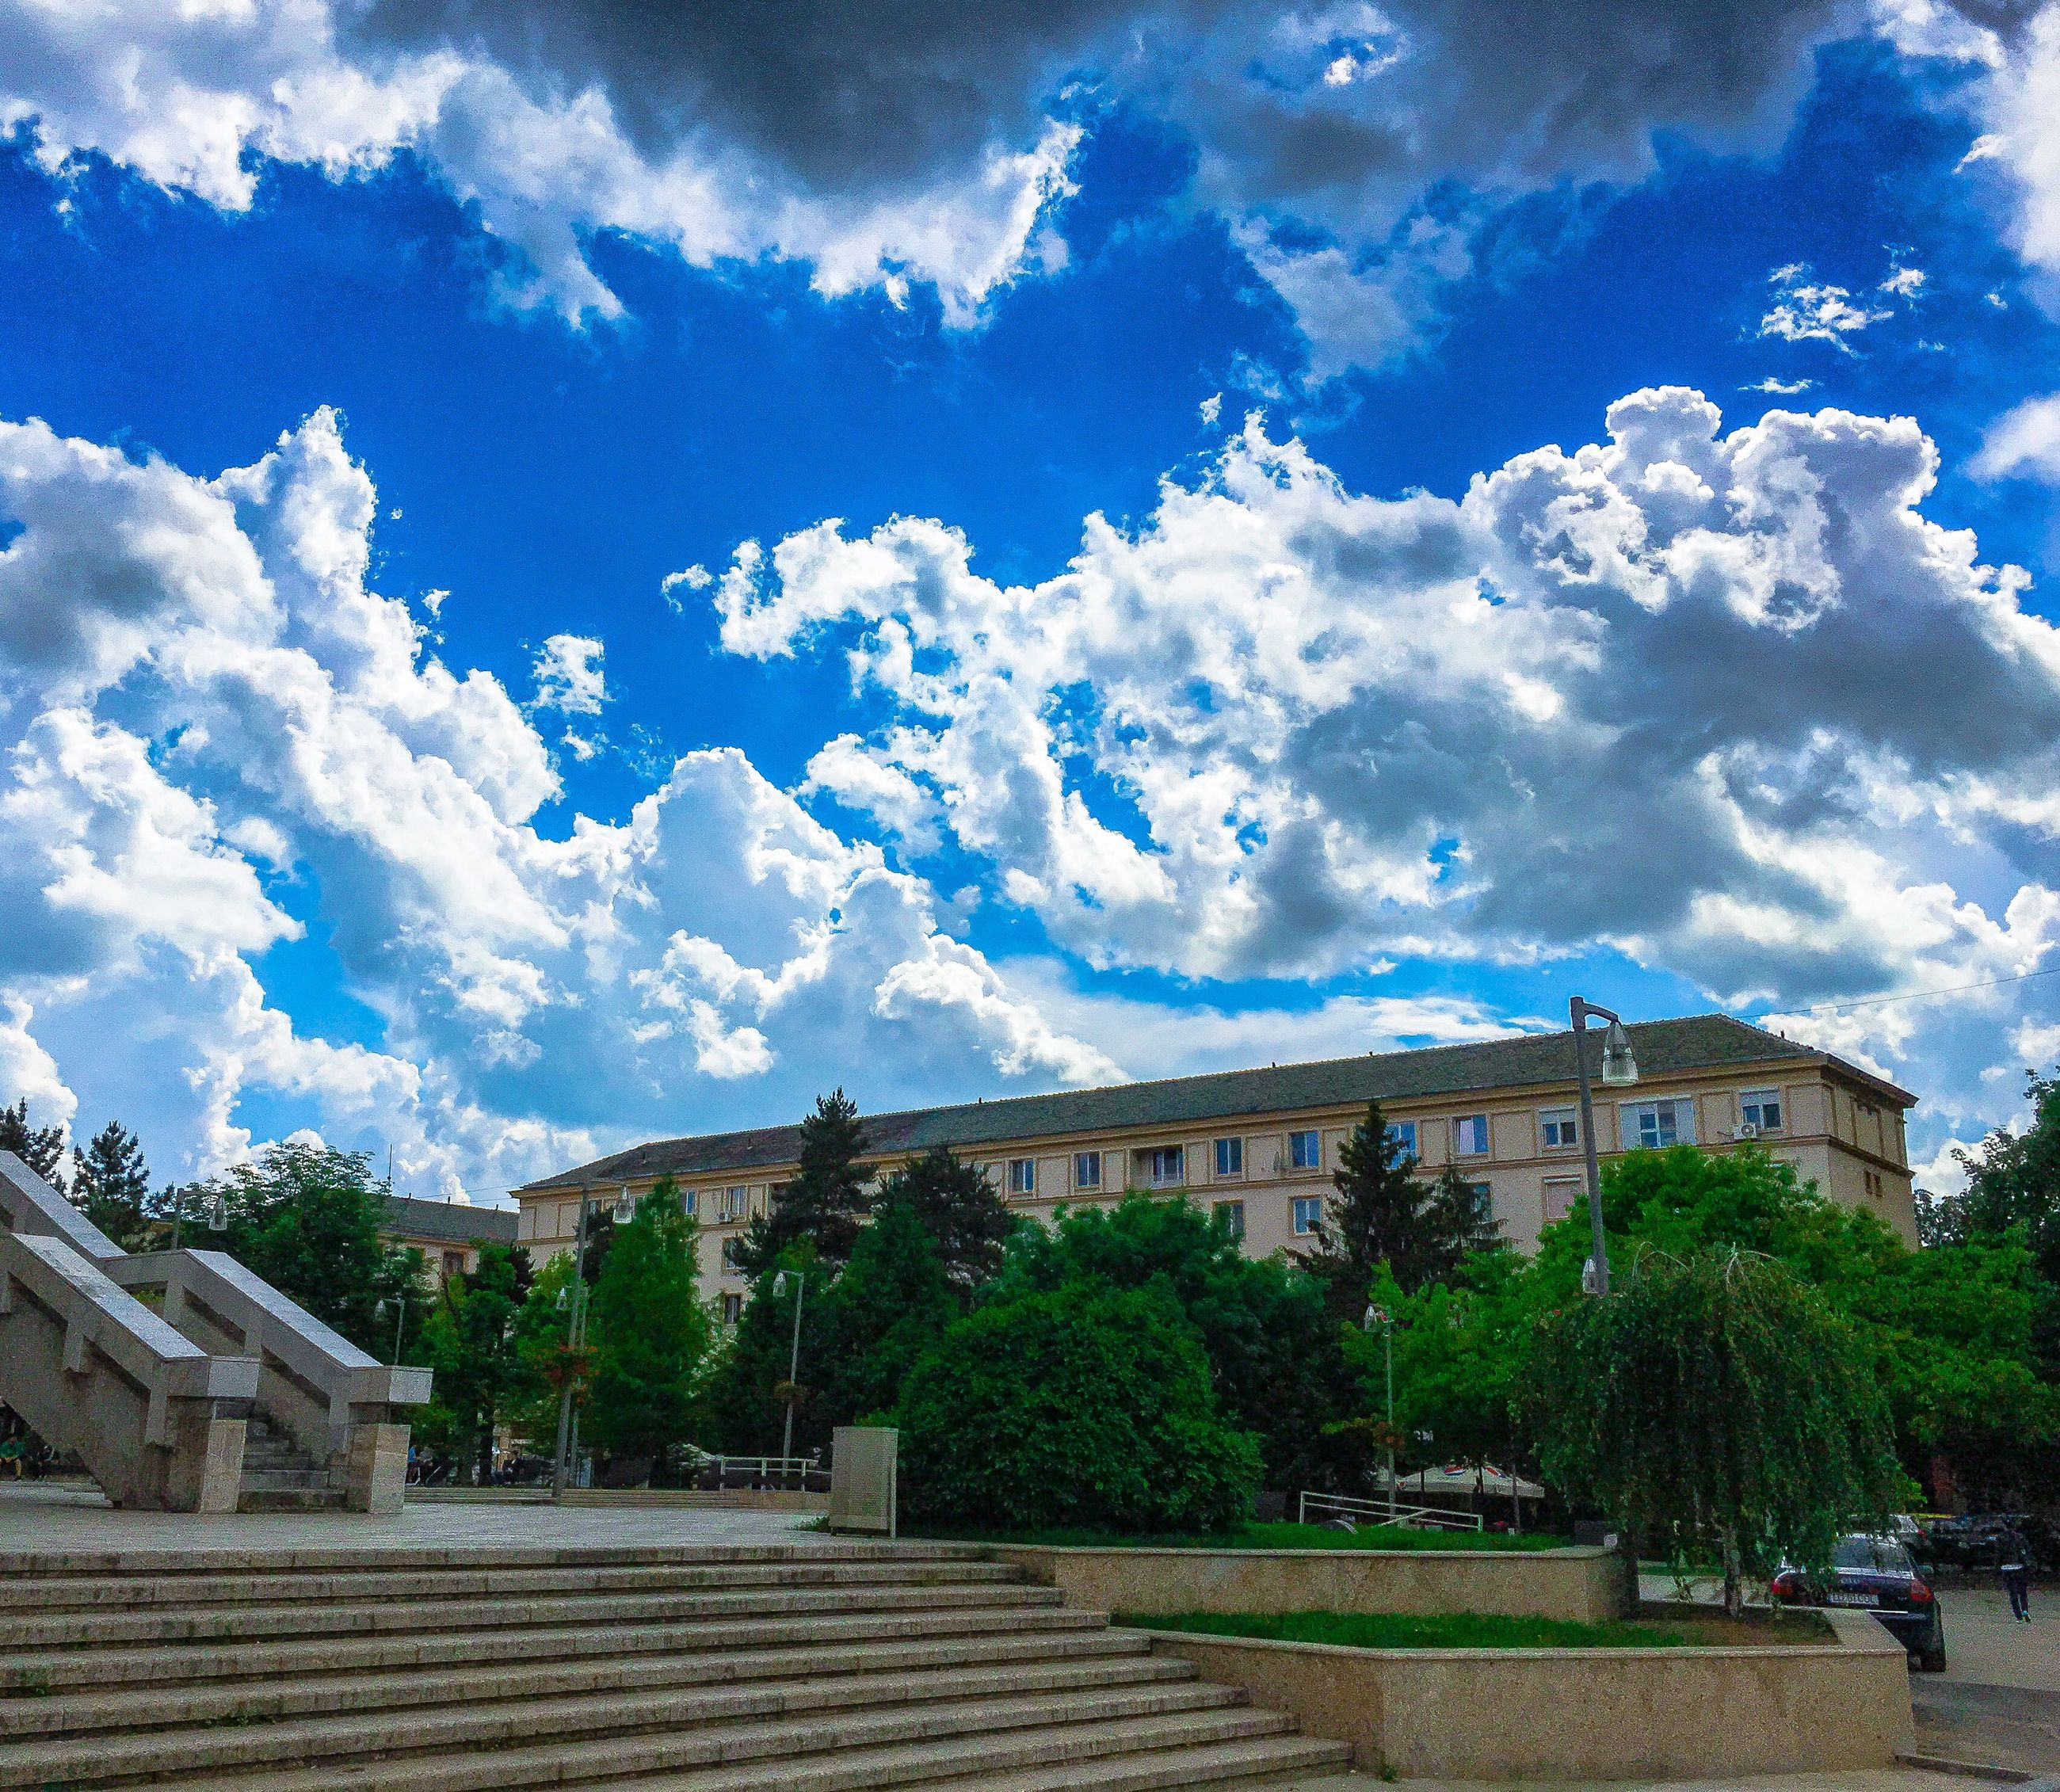 sky, tree, cloud - sky, architecture, built structure, building exterior, cloud, cloudy, day, blue, incidental people, outdoors, railing, transportation, nature, travel, city, low angle view, growth, steps